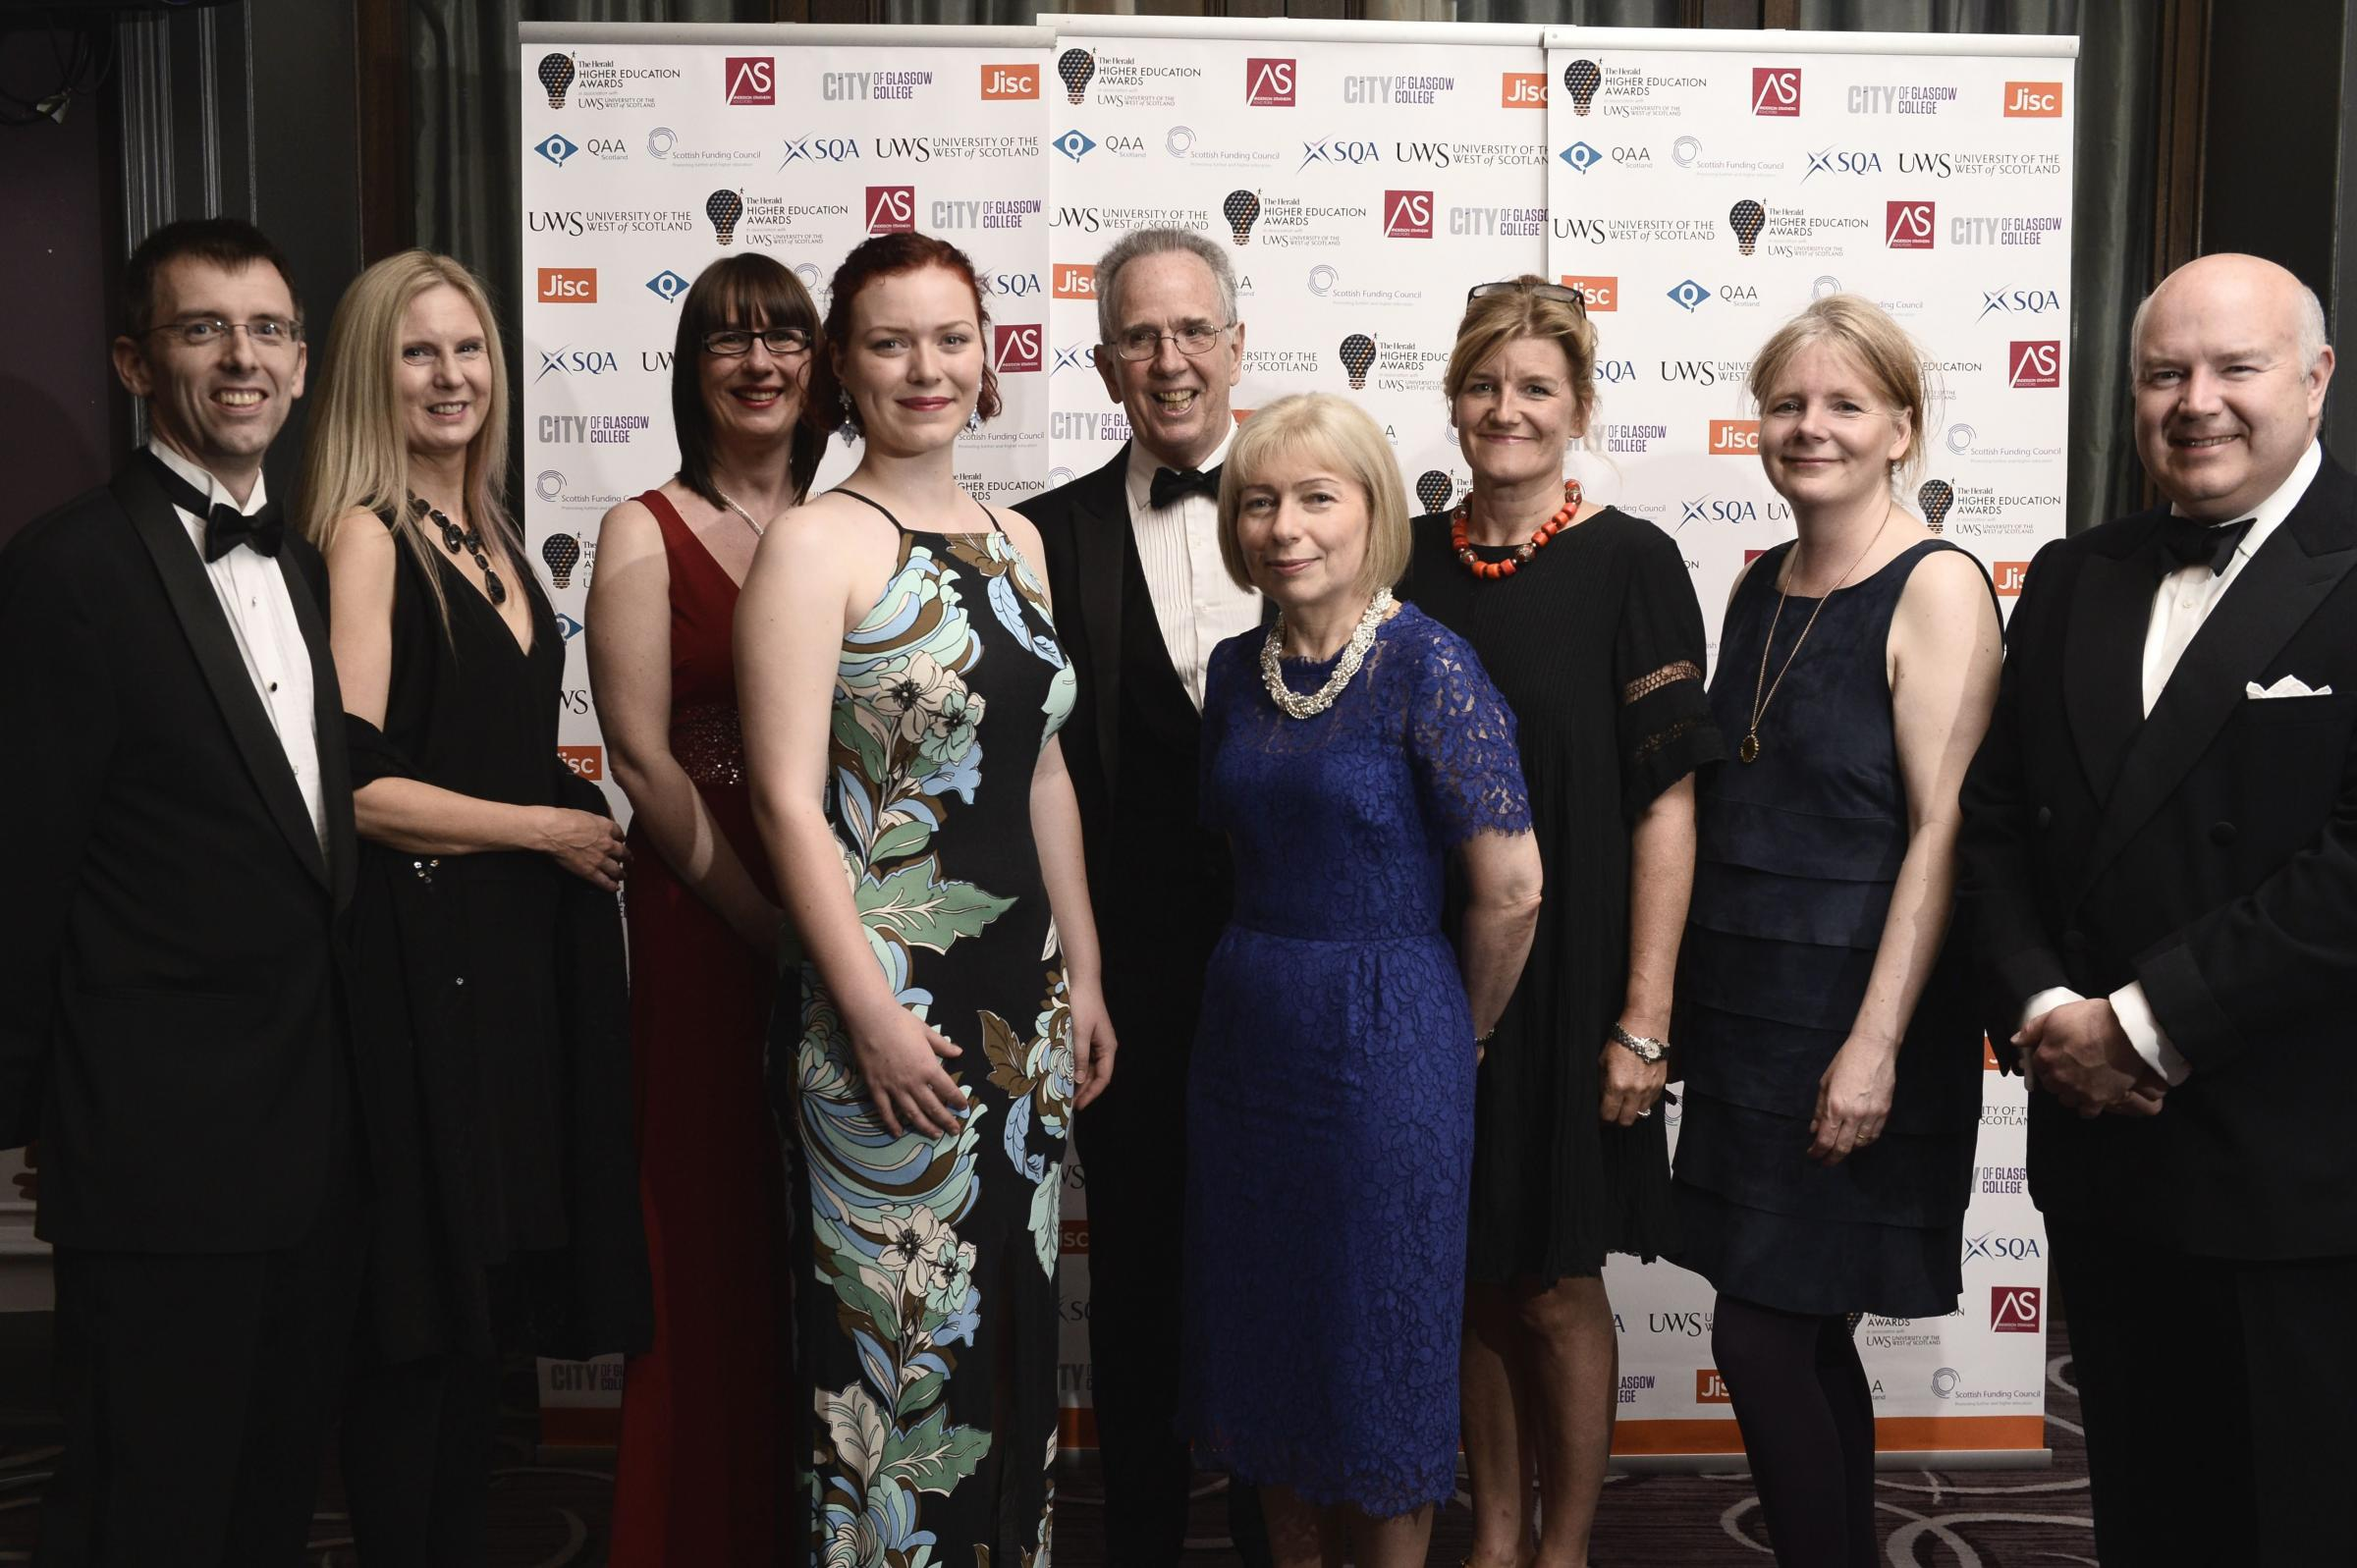 Staff from the University of Glasgow celebrate success at the awards